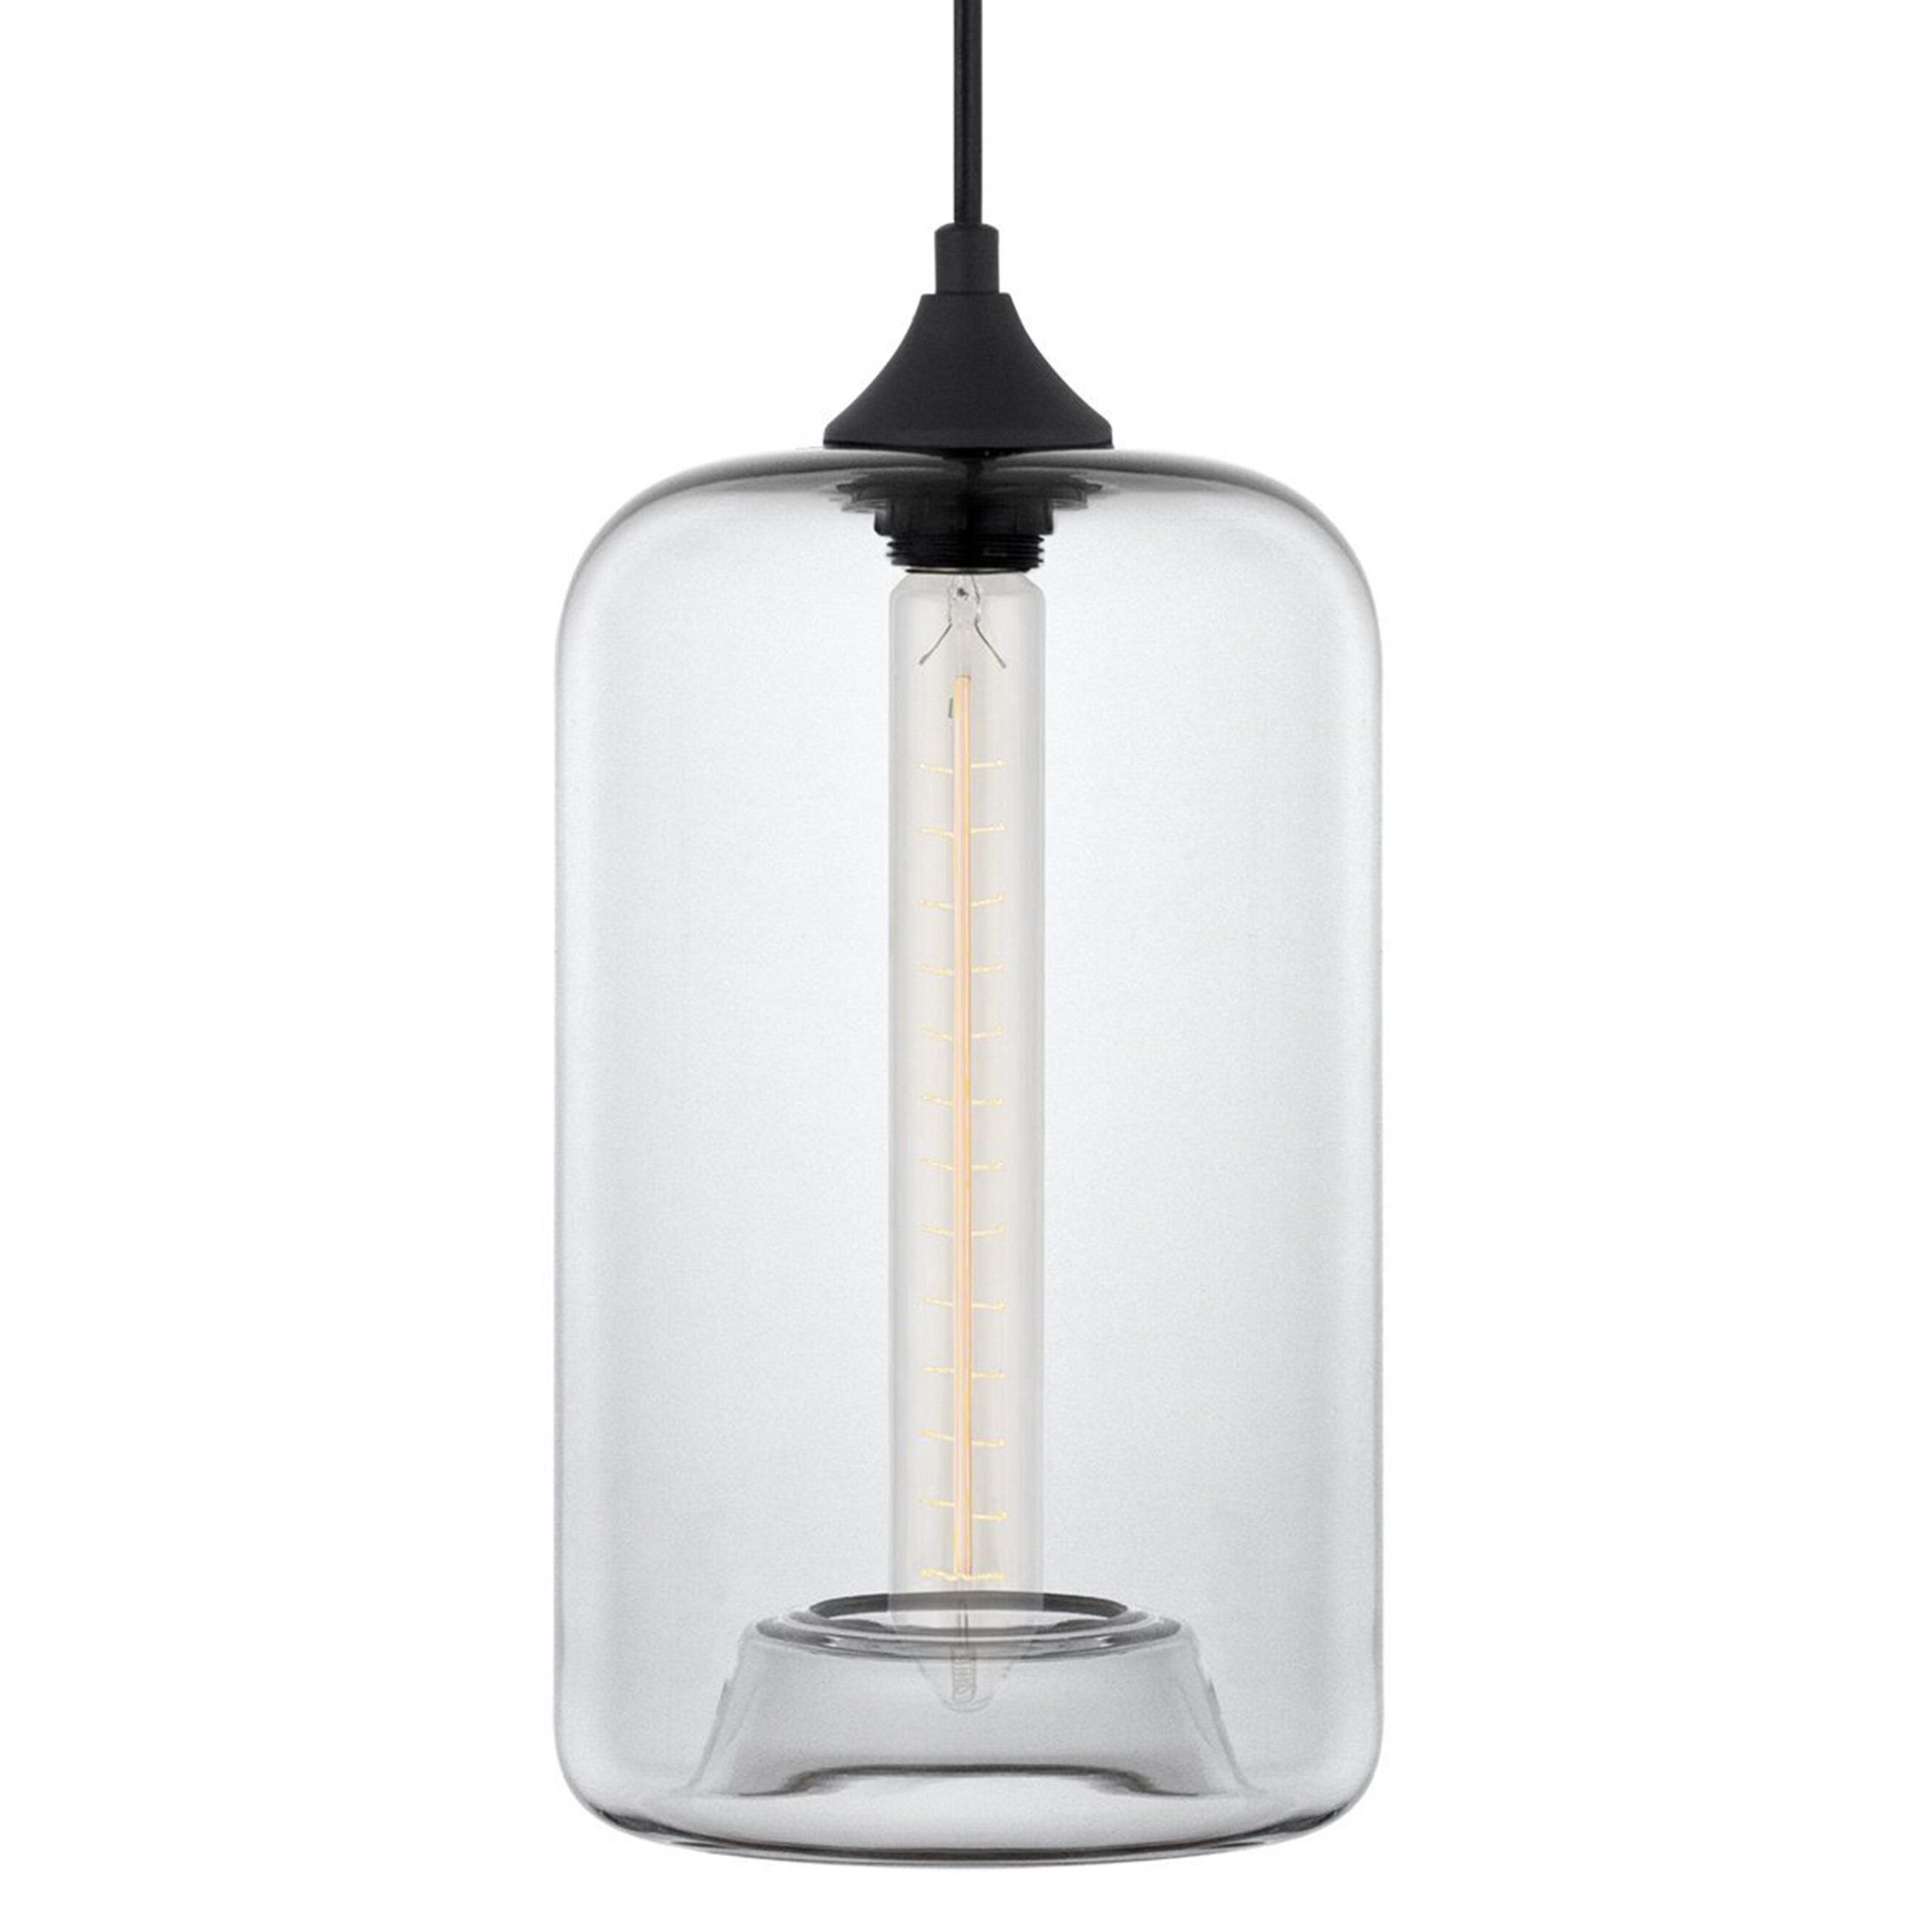 2019 Derek 1-Light Cylinder Pendant in Scruggs 1-Light Geometric Pendants